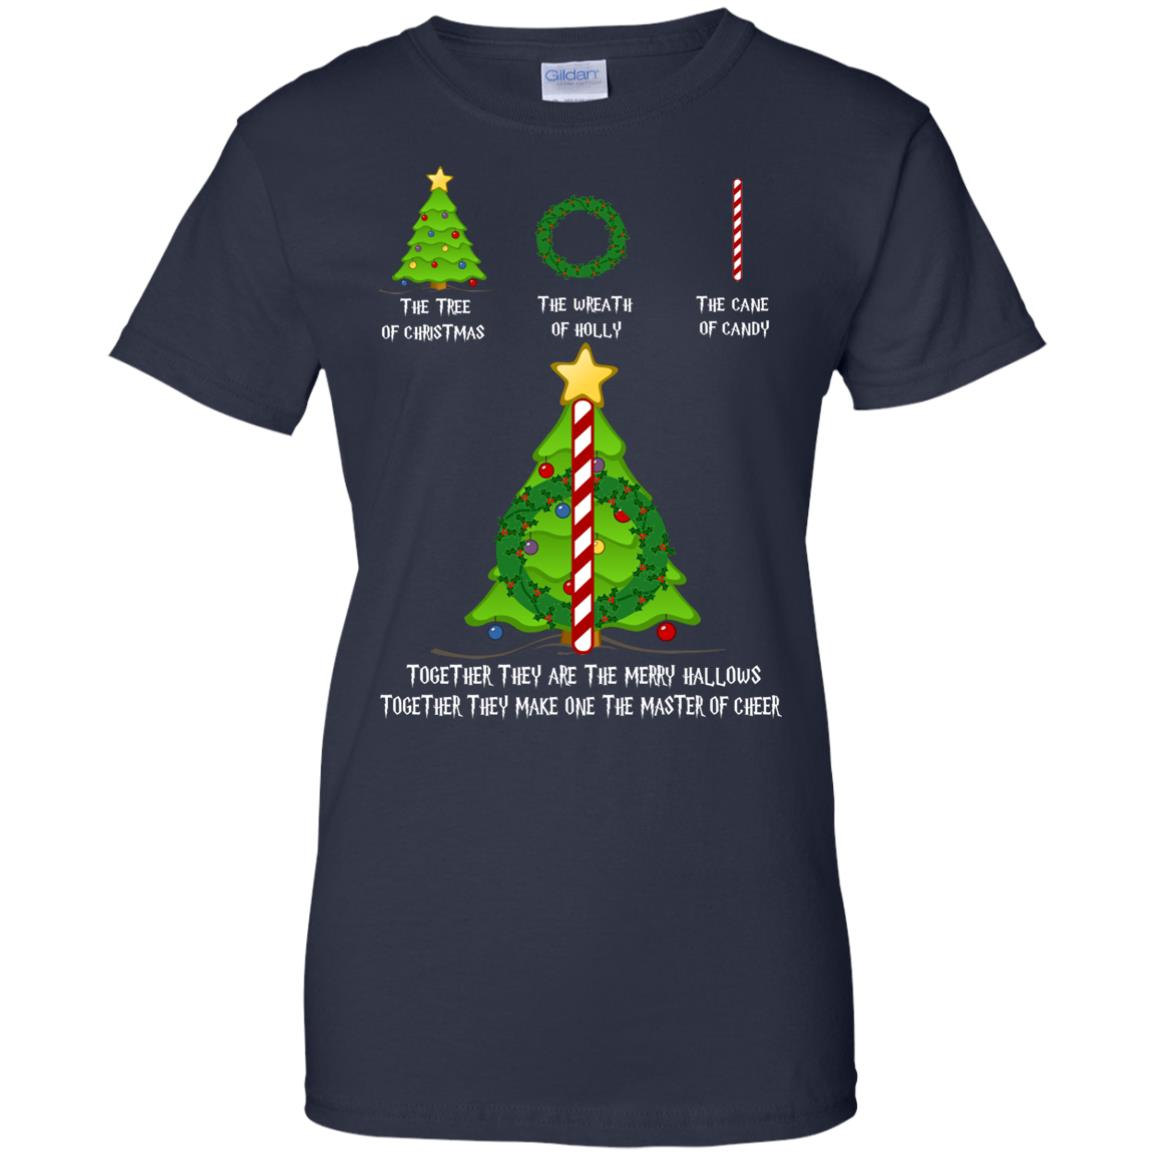 image 380px The Tree Of Christmas The Wreath of Holly The Cane Of Candy T Shirts